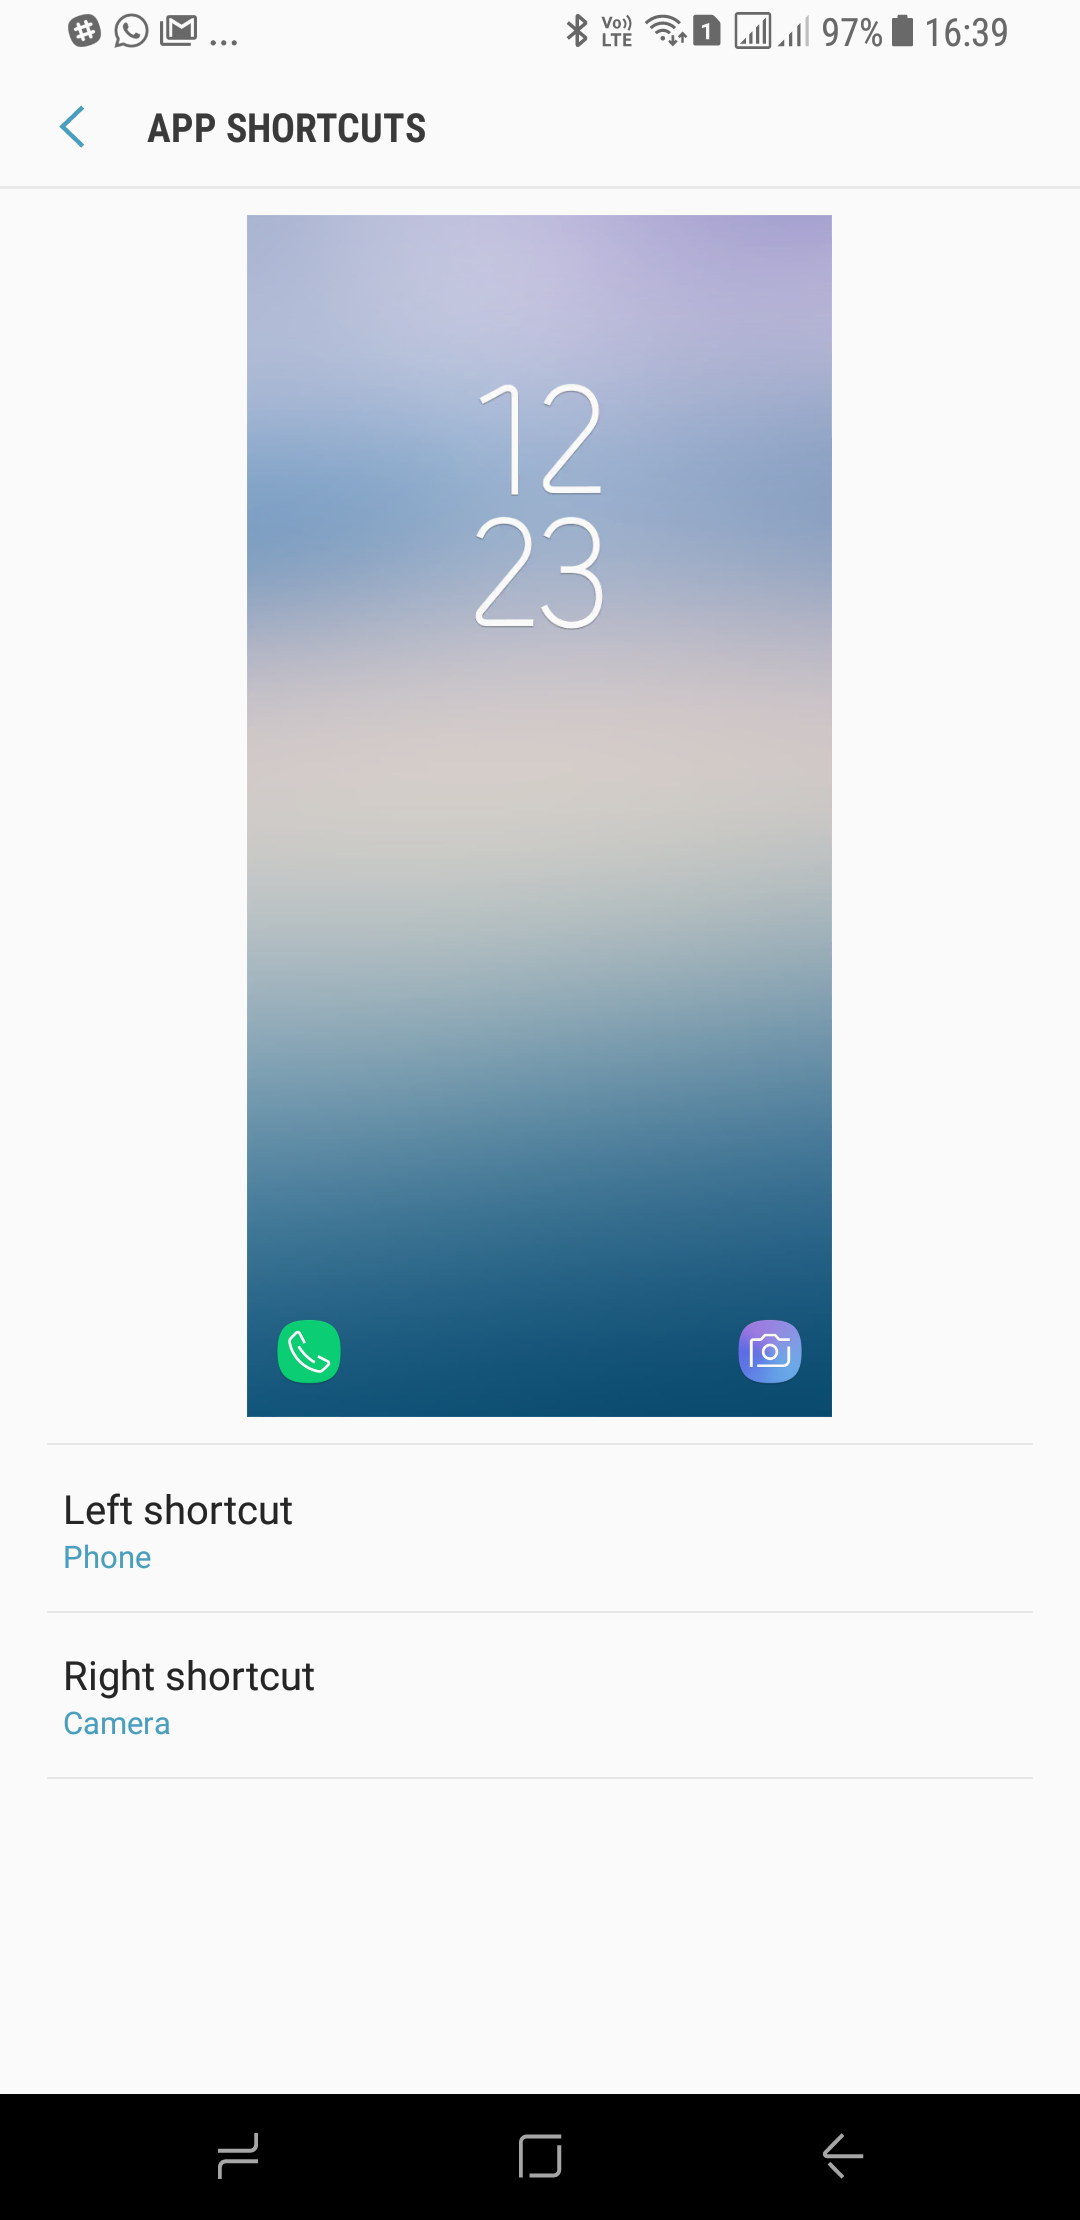 Galaxy S8 Tip: Change the app shortcuts on the lock screen